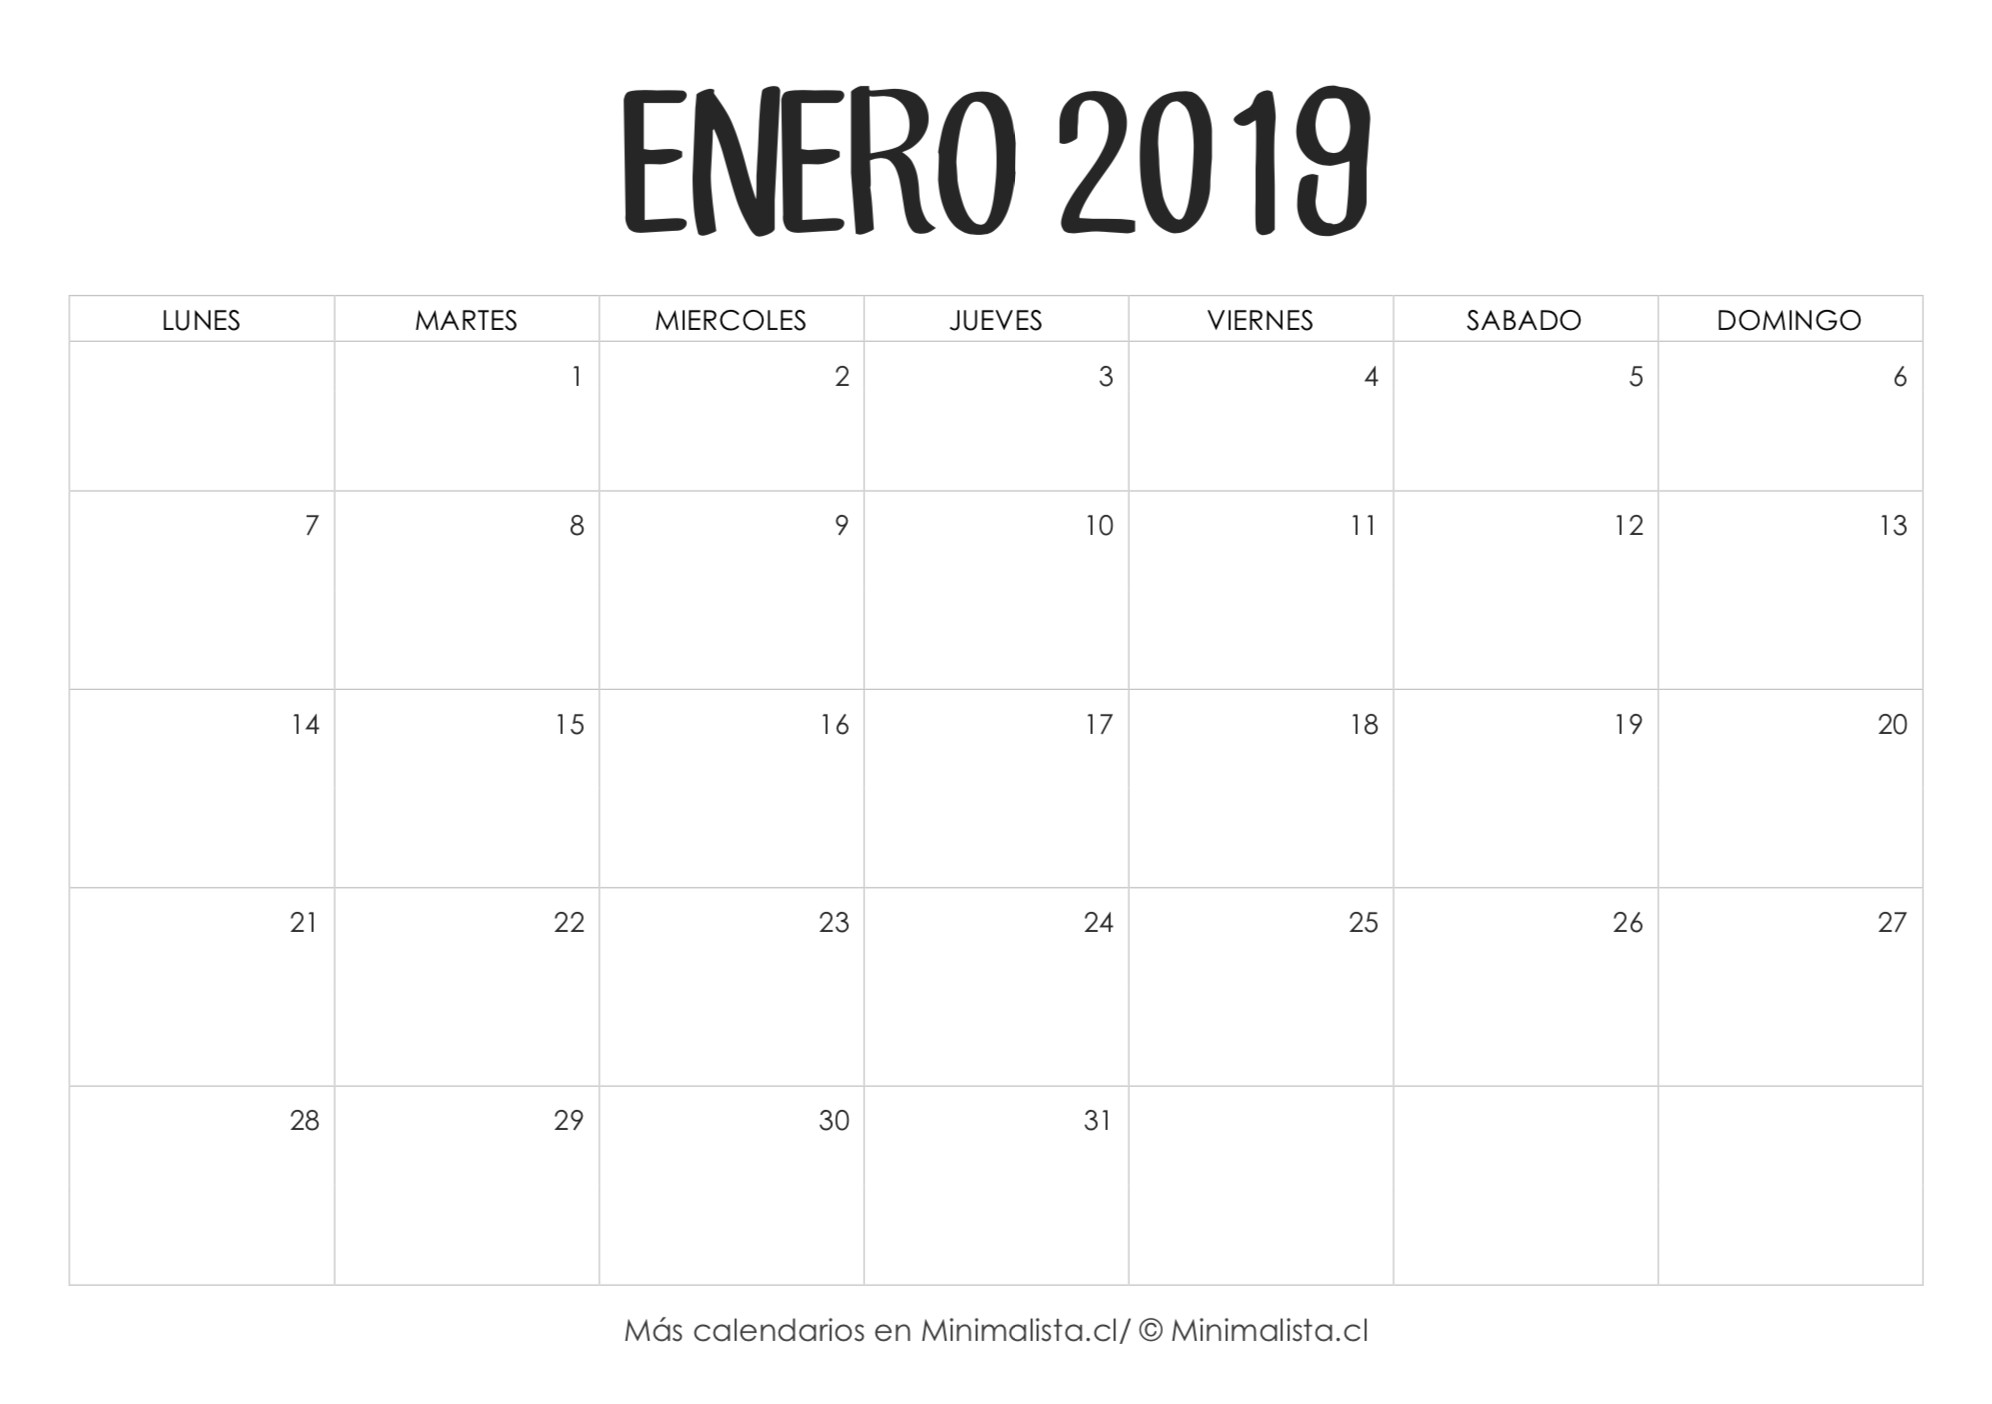 Calendario Escolar Diciembre 2019 Más Recientes Best Calendario Enero 2019 Para Imprimir Gratis Image Collection Of Calendario Escolar Diciembre 2019 Más Caliente Pin De Calendario Hispano En Calendario Lunar A±o 2018